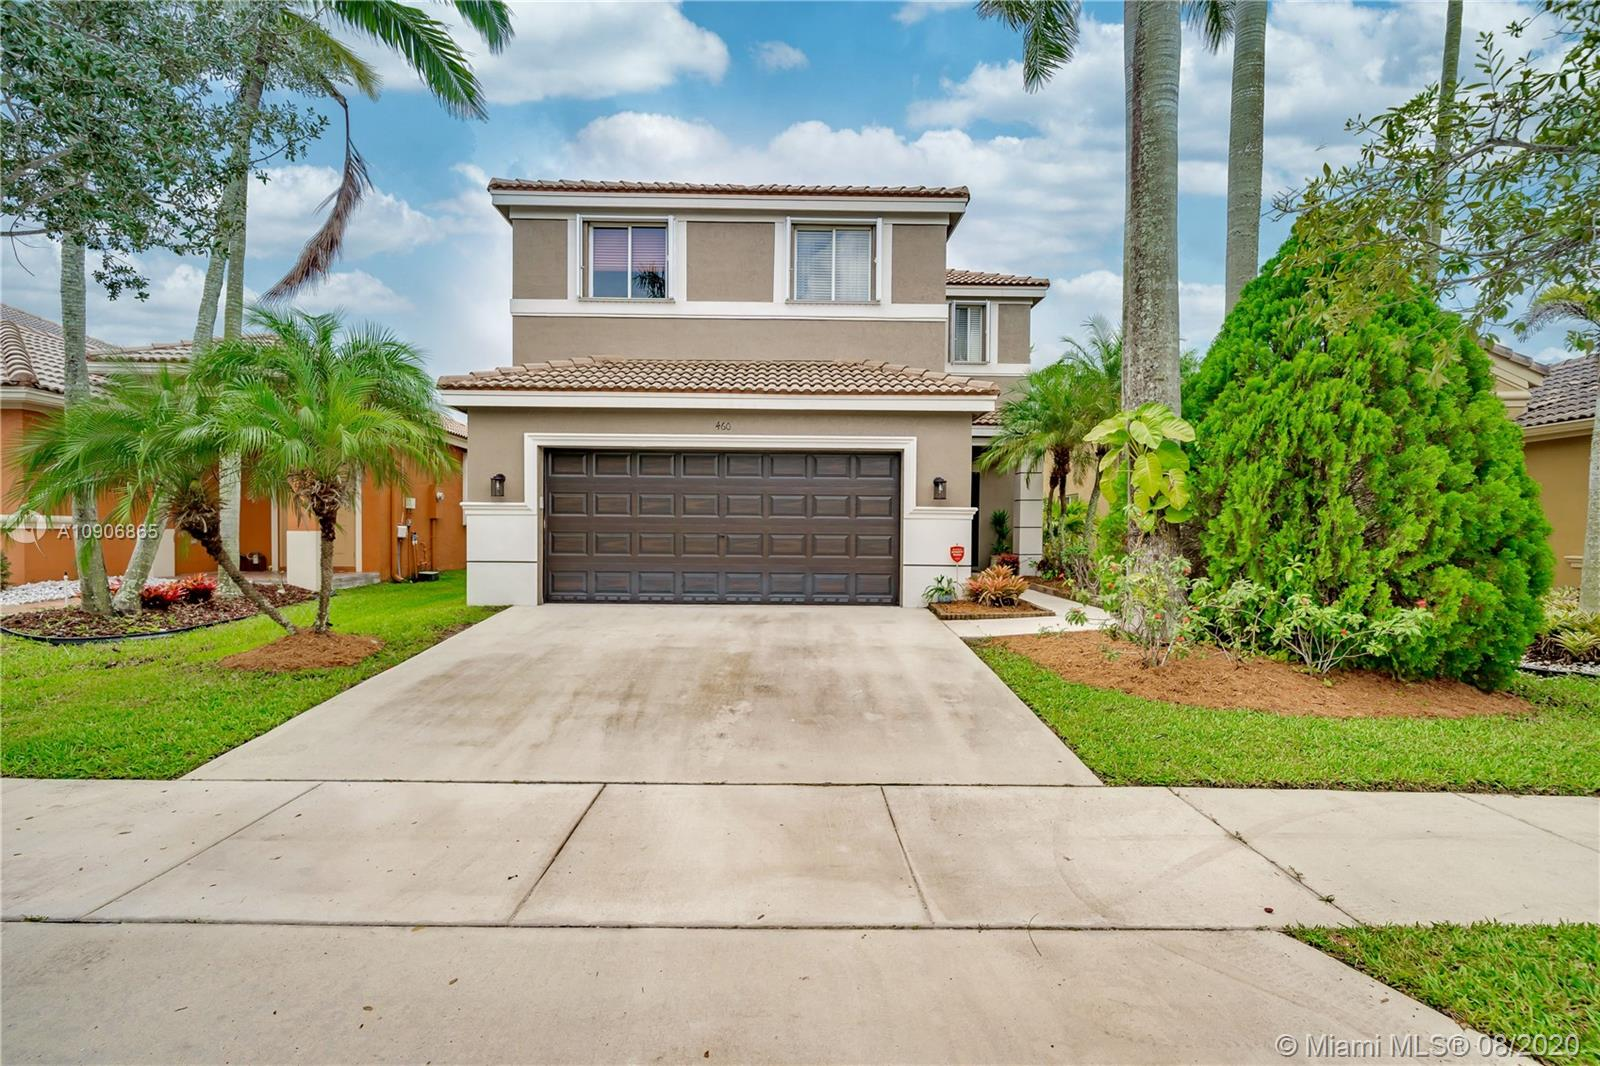 Details for 460 Silver Palm Way, Weston, FL 33327